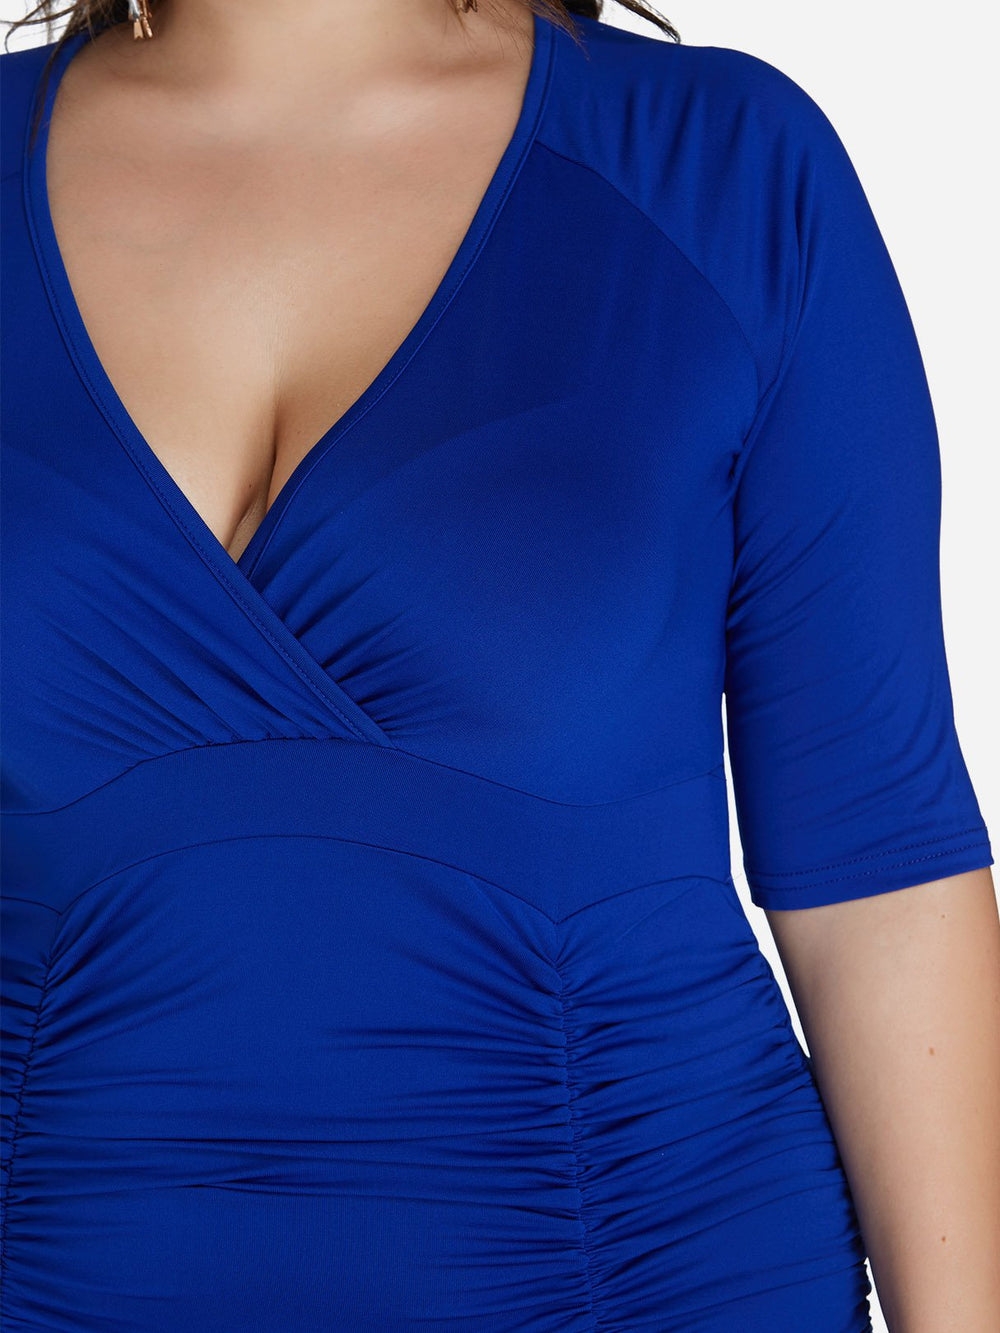 Ladies Half Sleeve Plus Size Dress